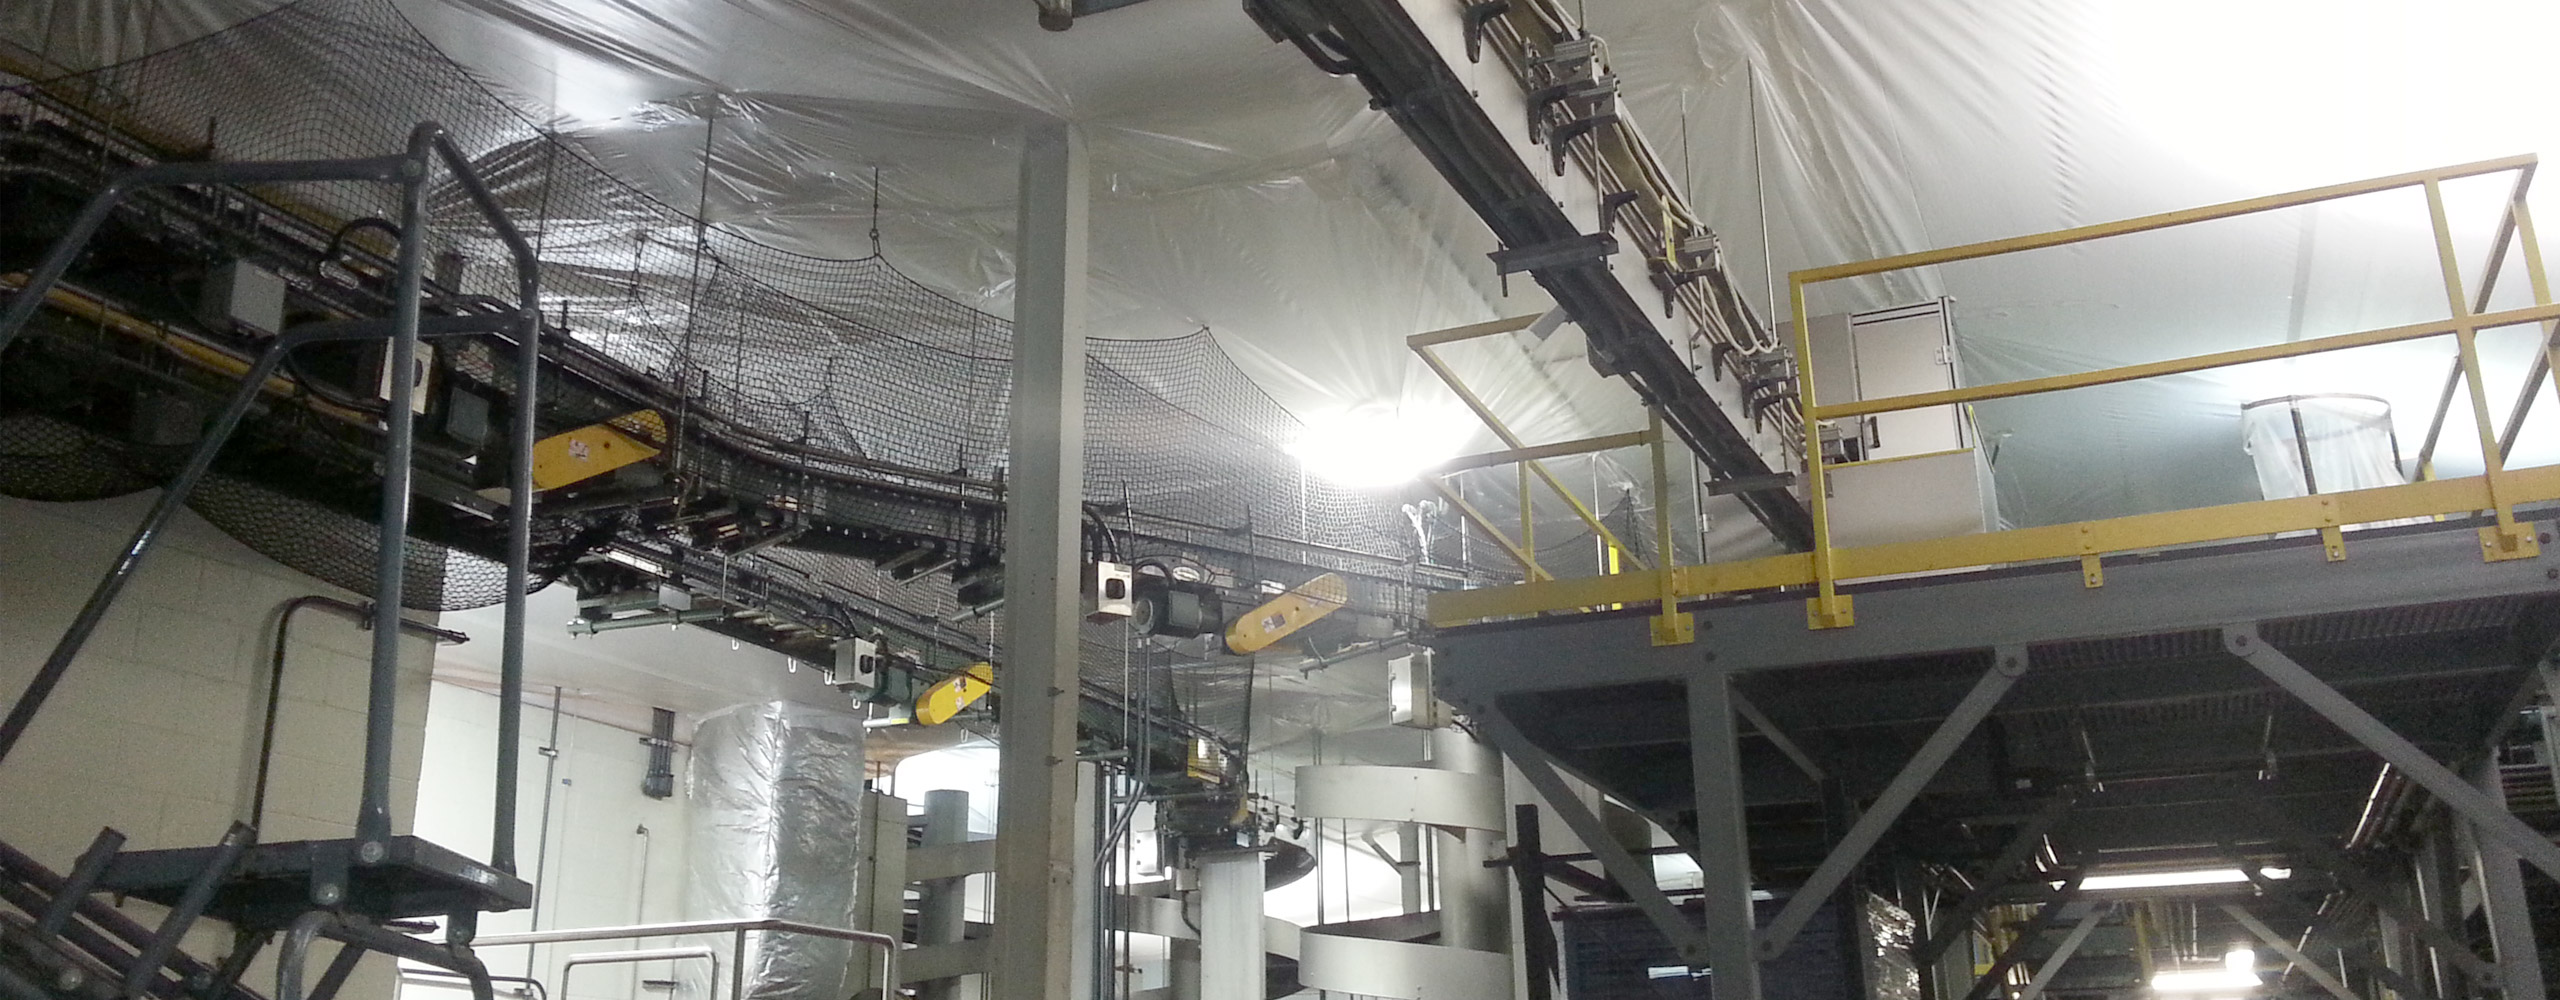 dust and debris containment for factory during renovations